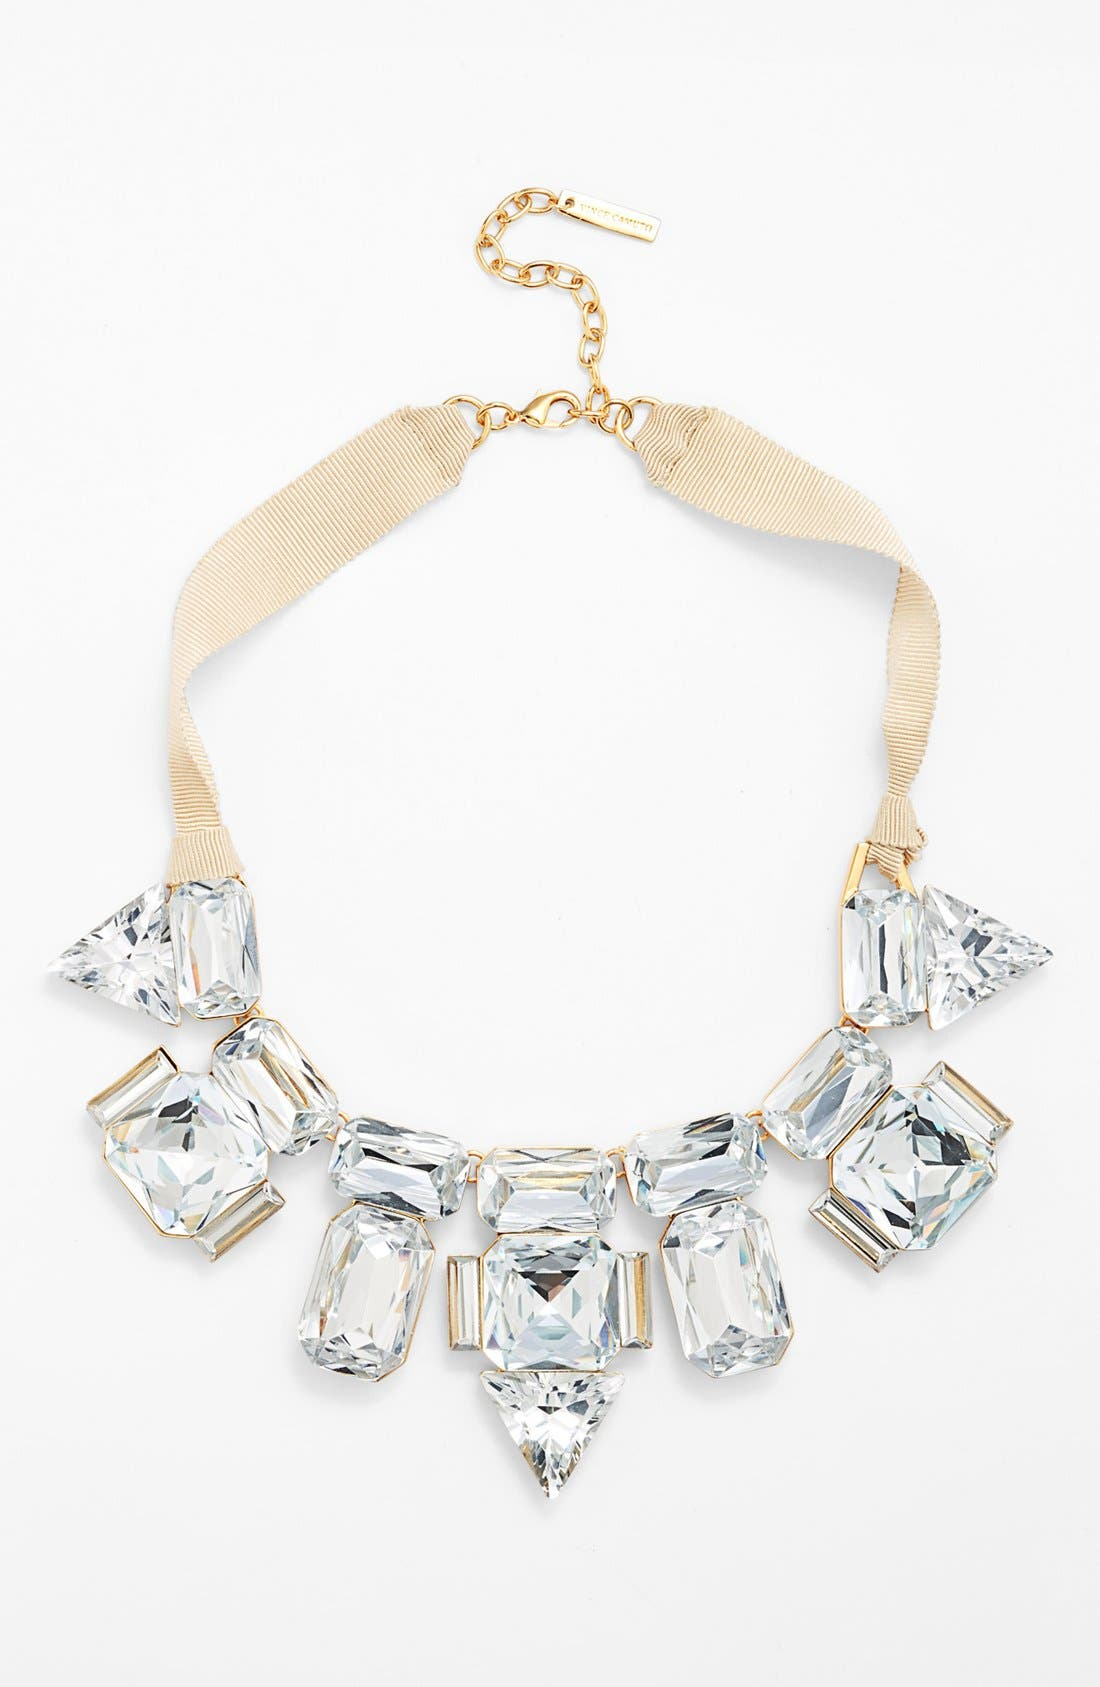 Main Image - Vince Camuto 'Crystal Clear' Crystal & Ribbon Statement Necklace